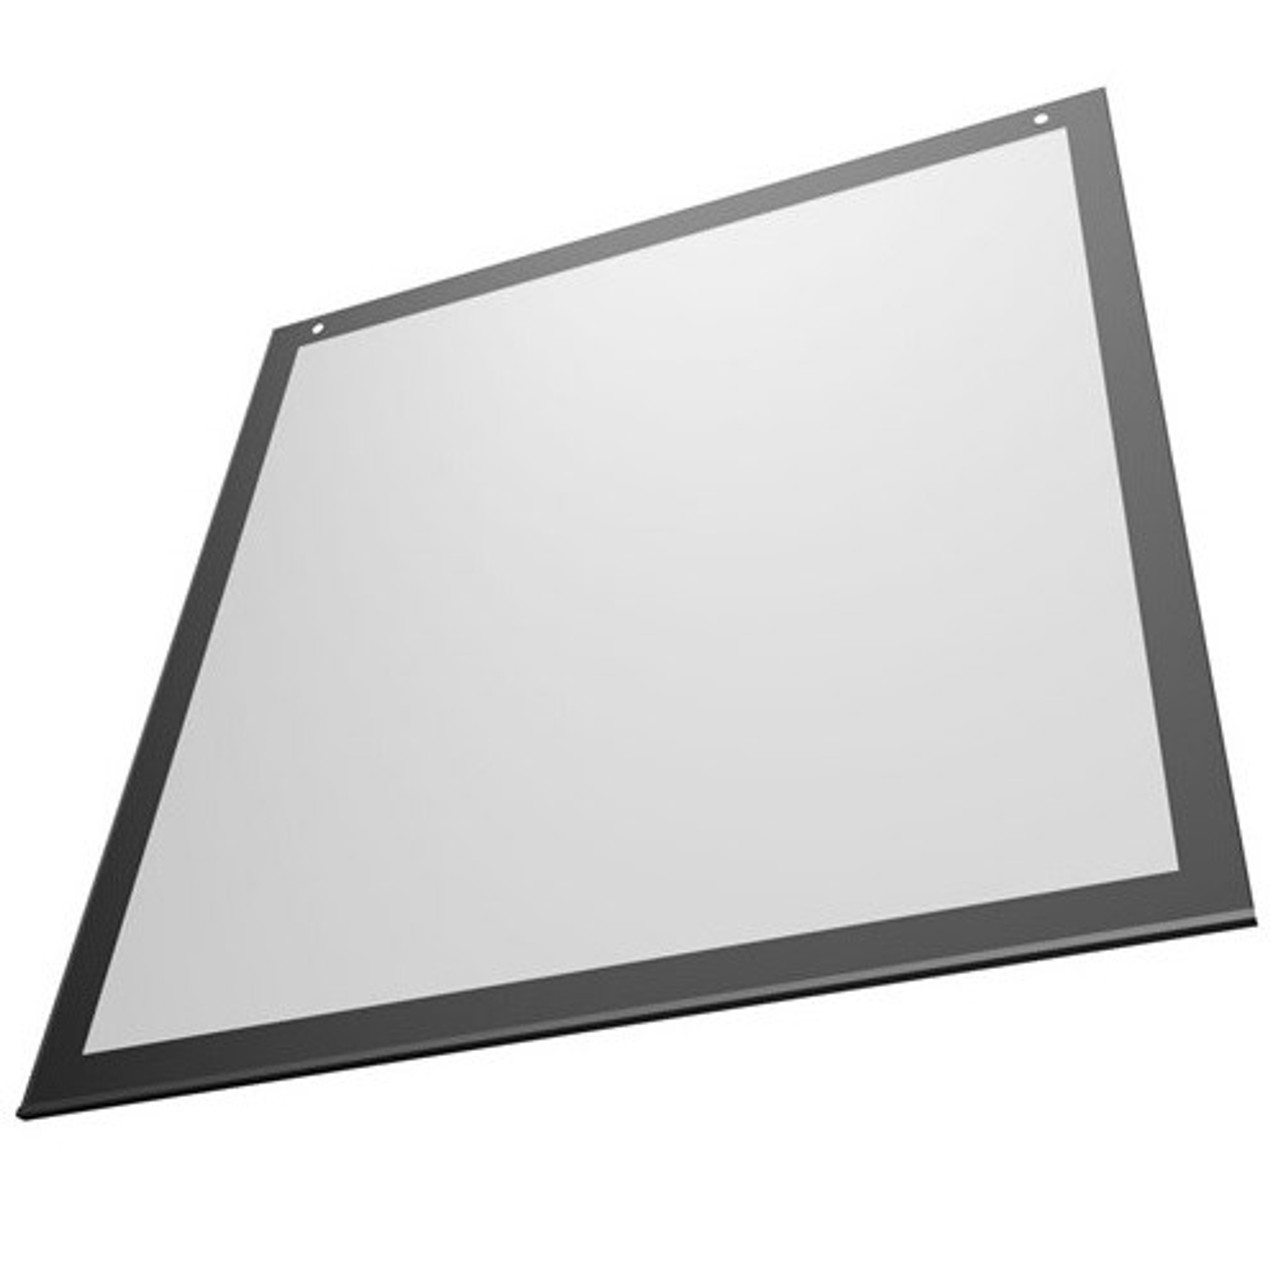 Image for Cooler Master MasterCase Tempered Glass Side Panel - Light Grey CX Computer Superstore